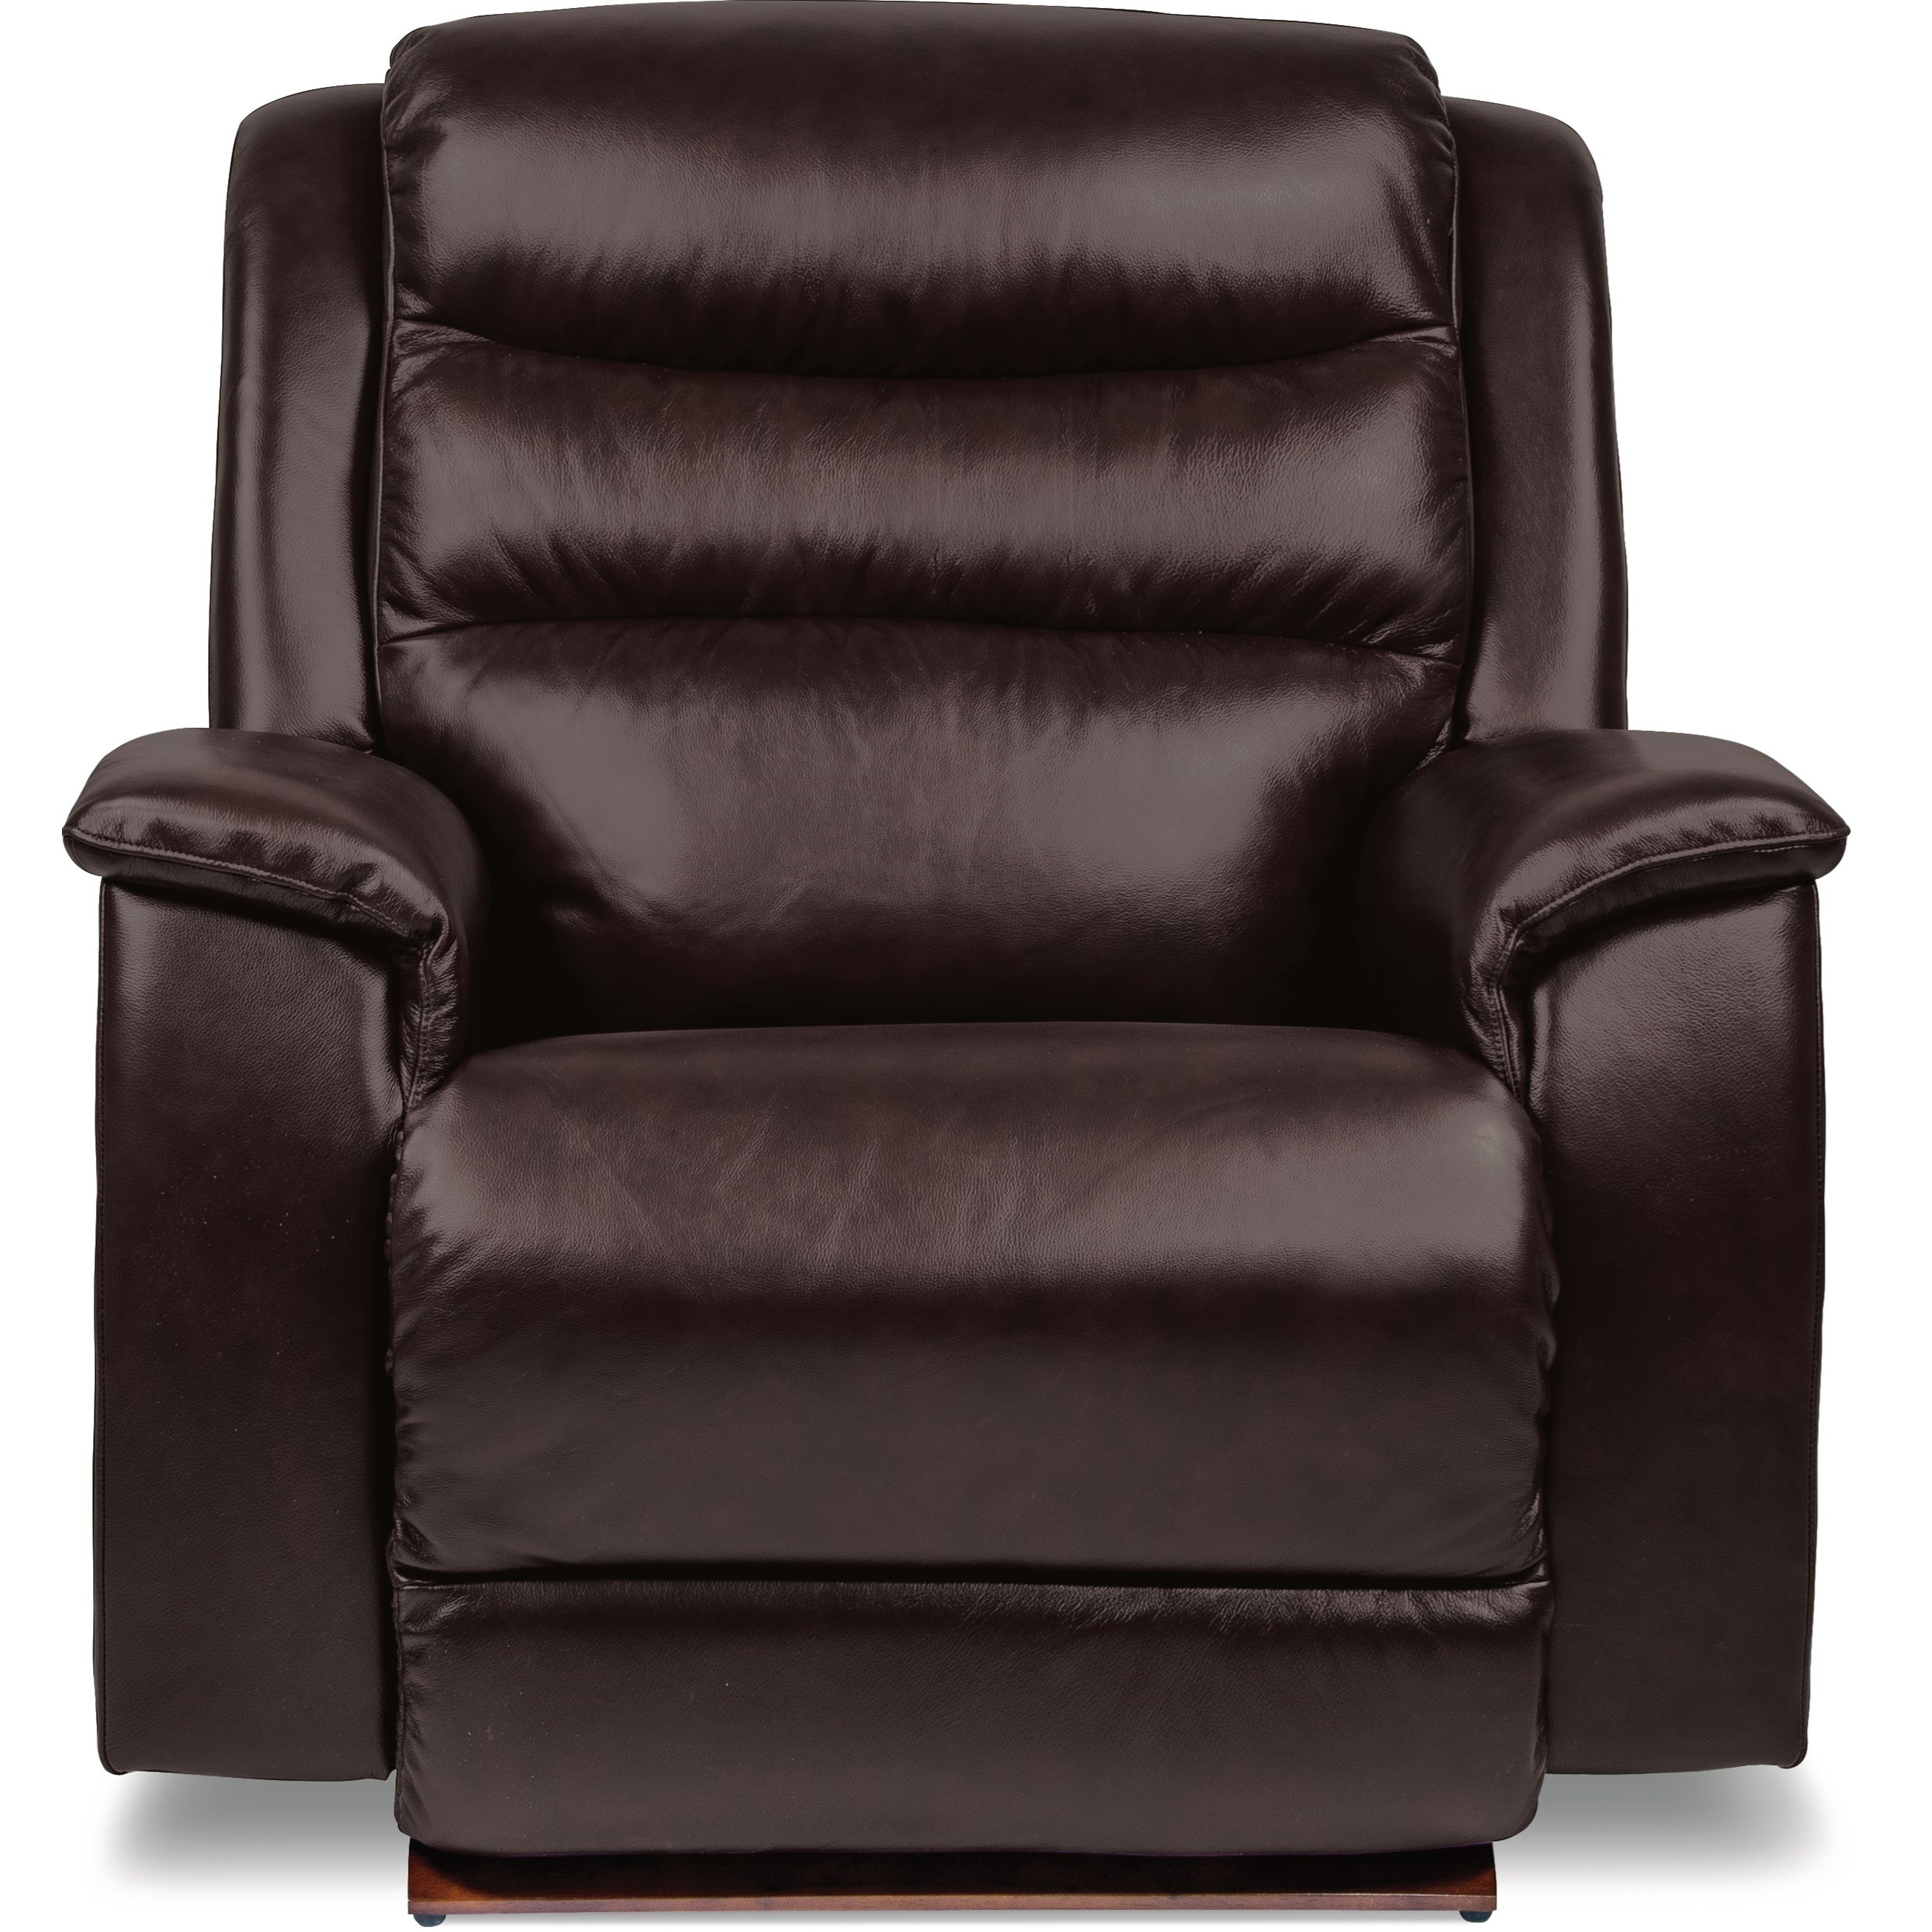 Redwood Rocking Recliner by La-Z-Boy at VanDrie Home Furnishings